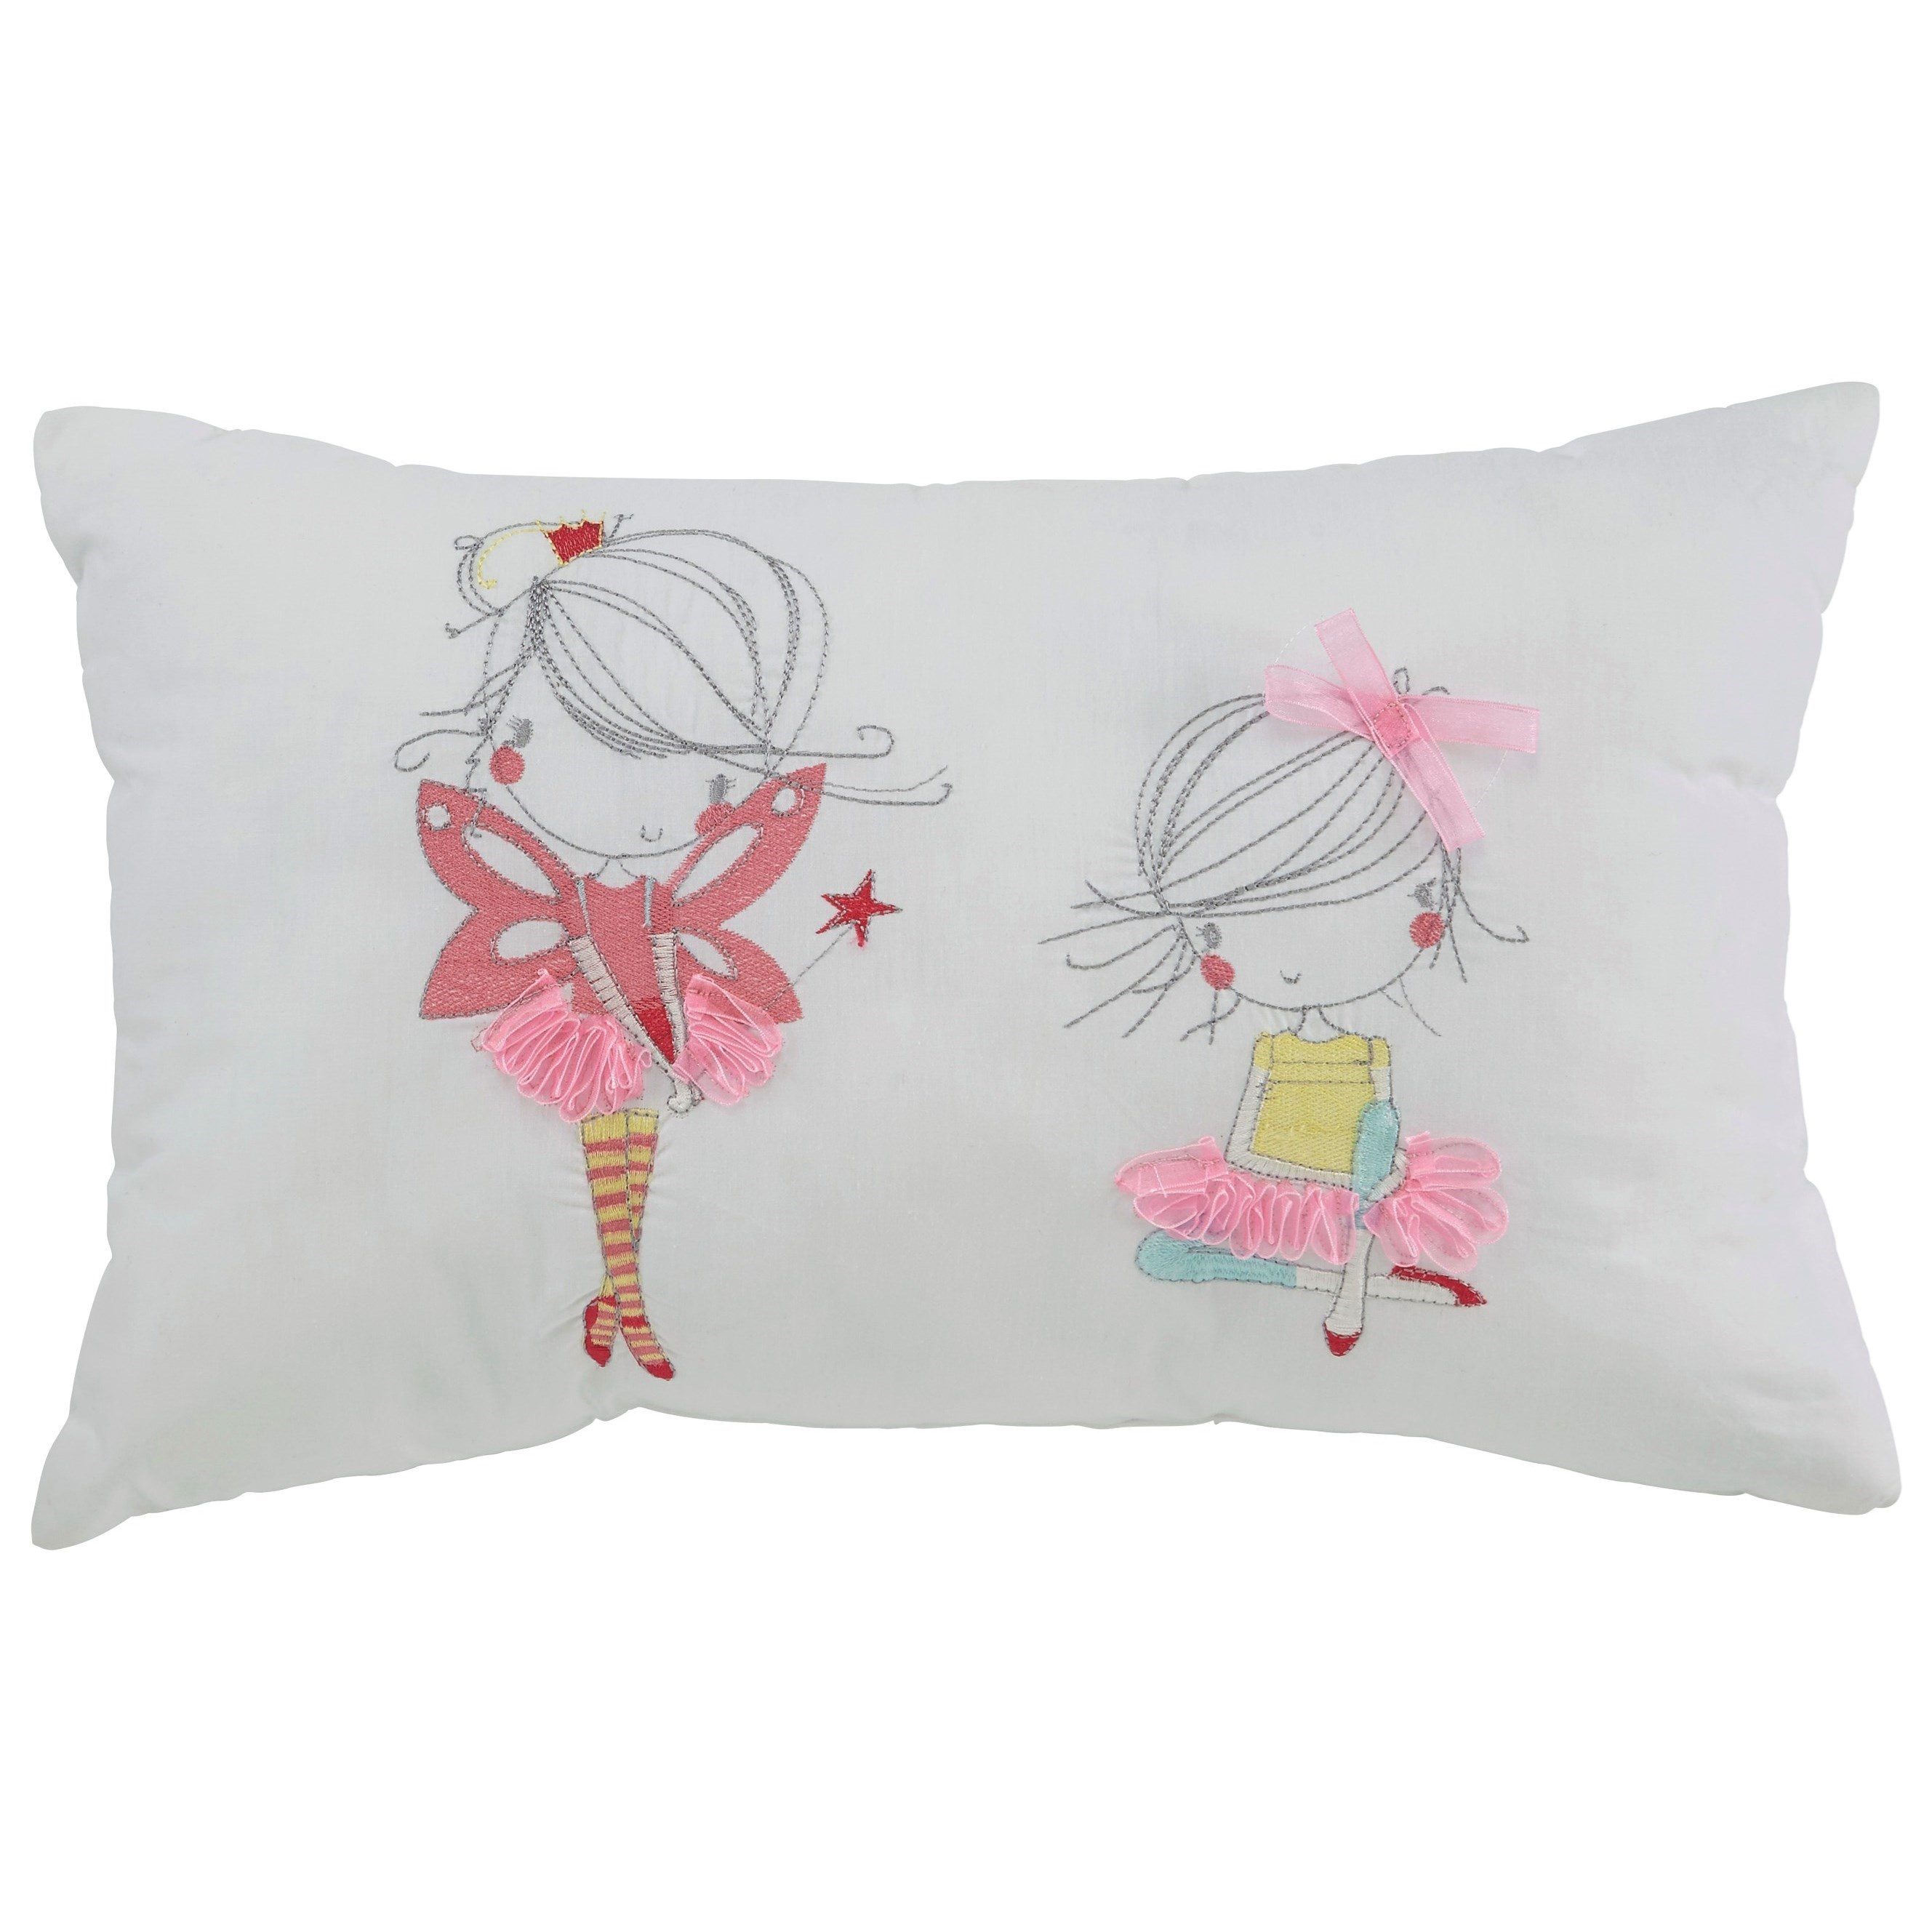 Signature Design by Ashley Pillows Mariaville White Pillow - Item Number: A1000717P